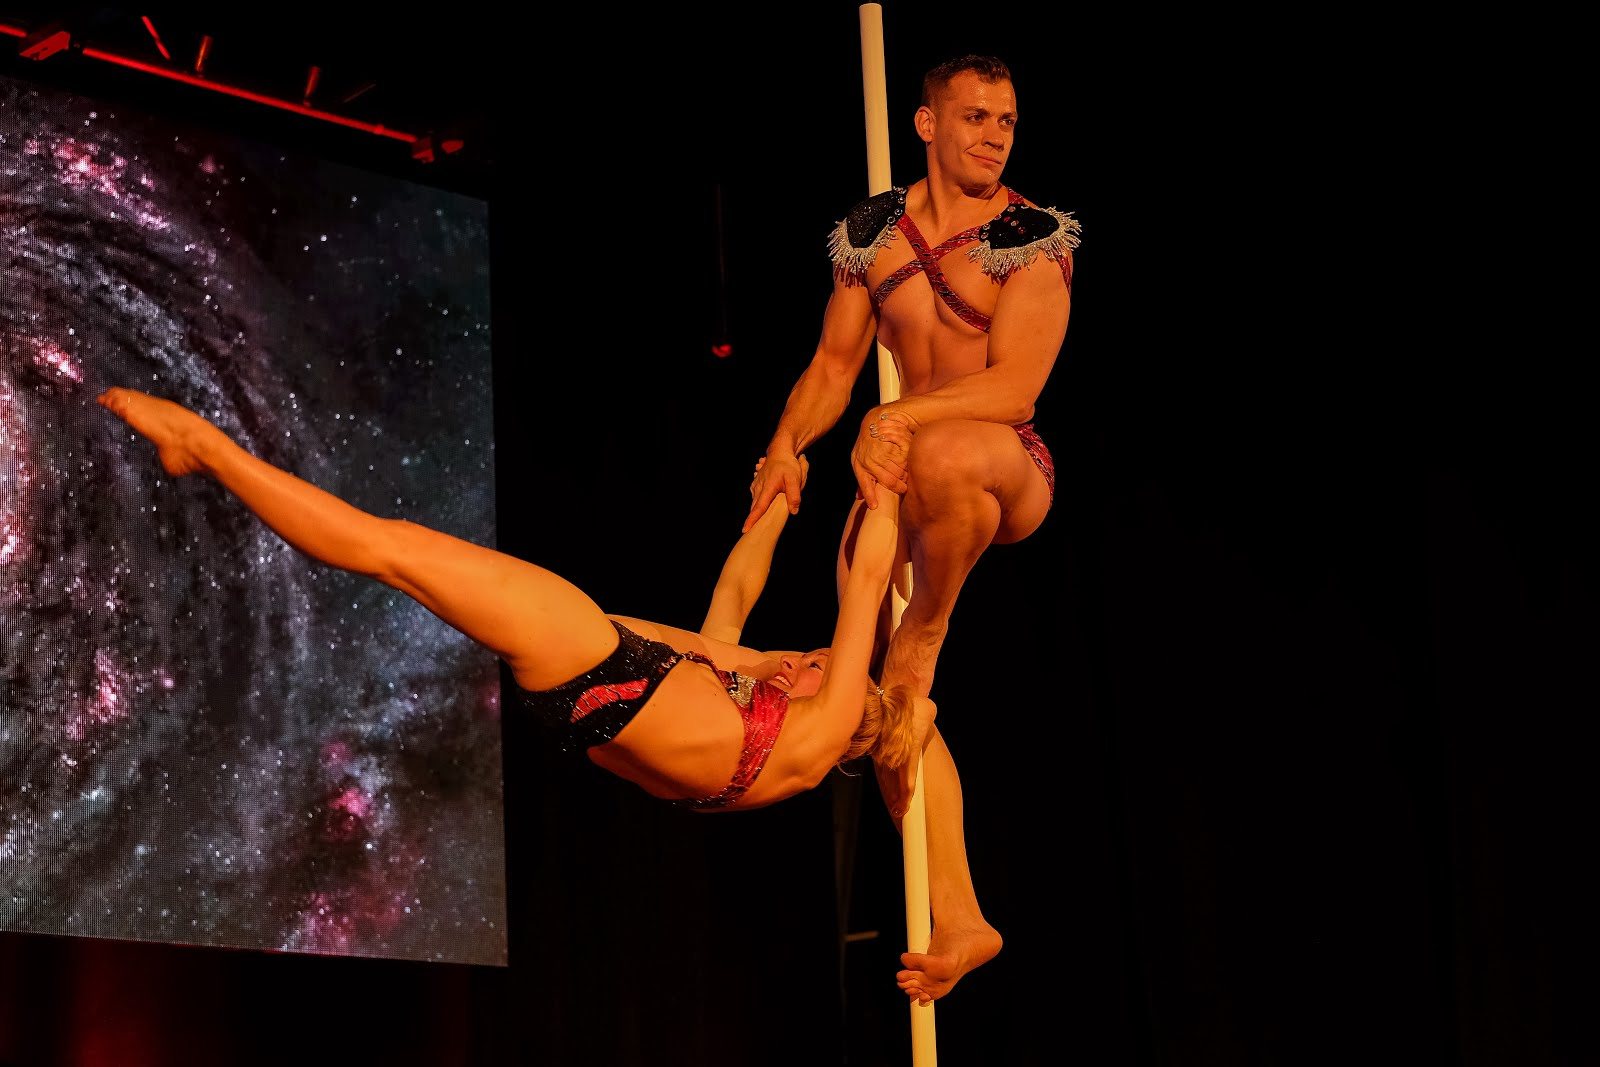 POLE DUO SHOW